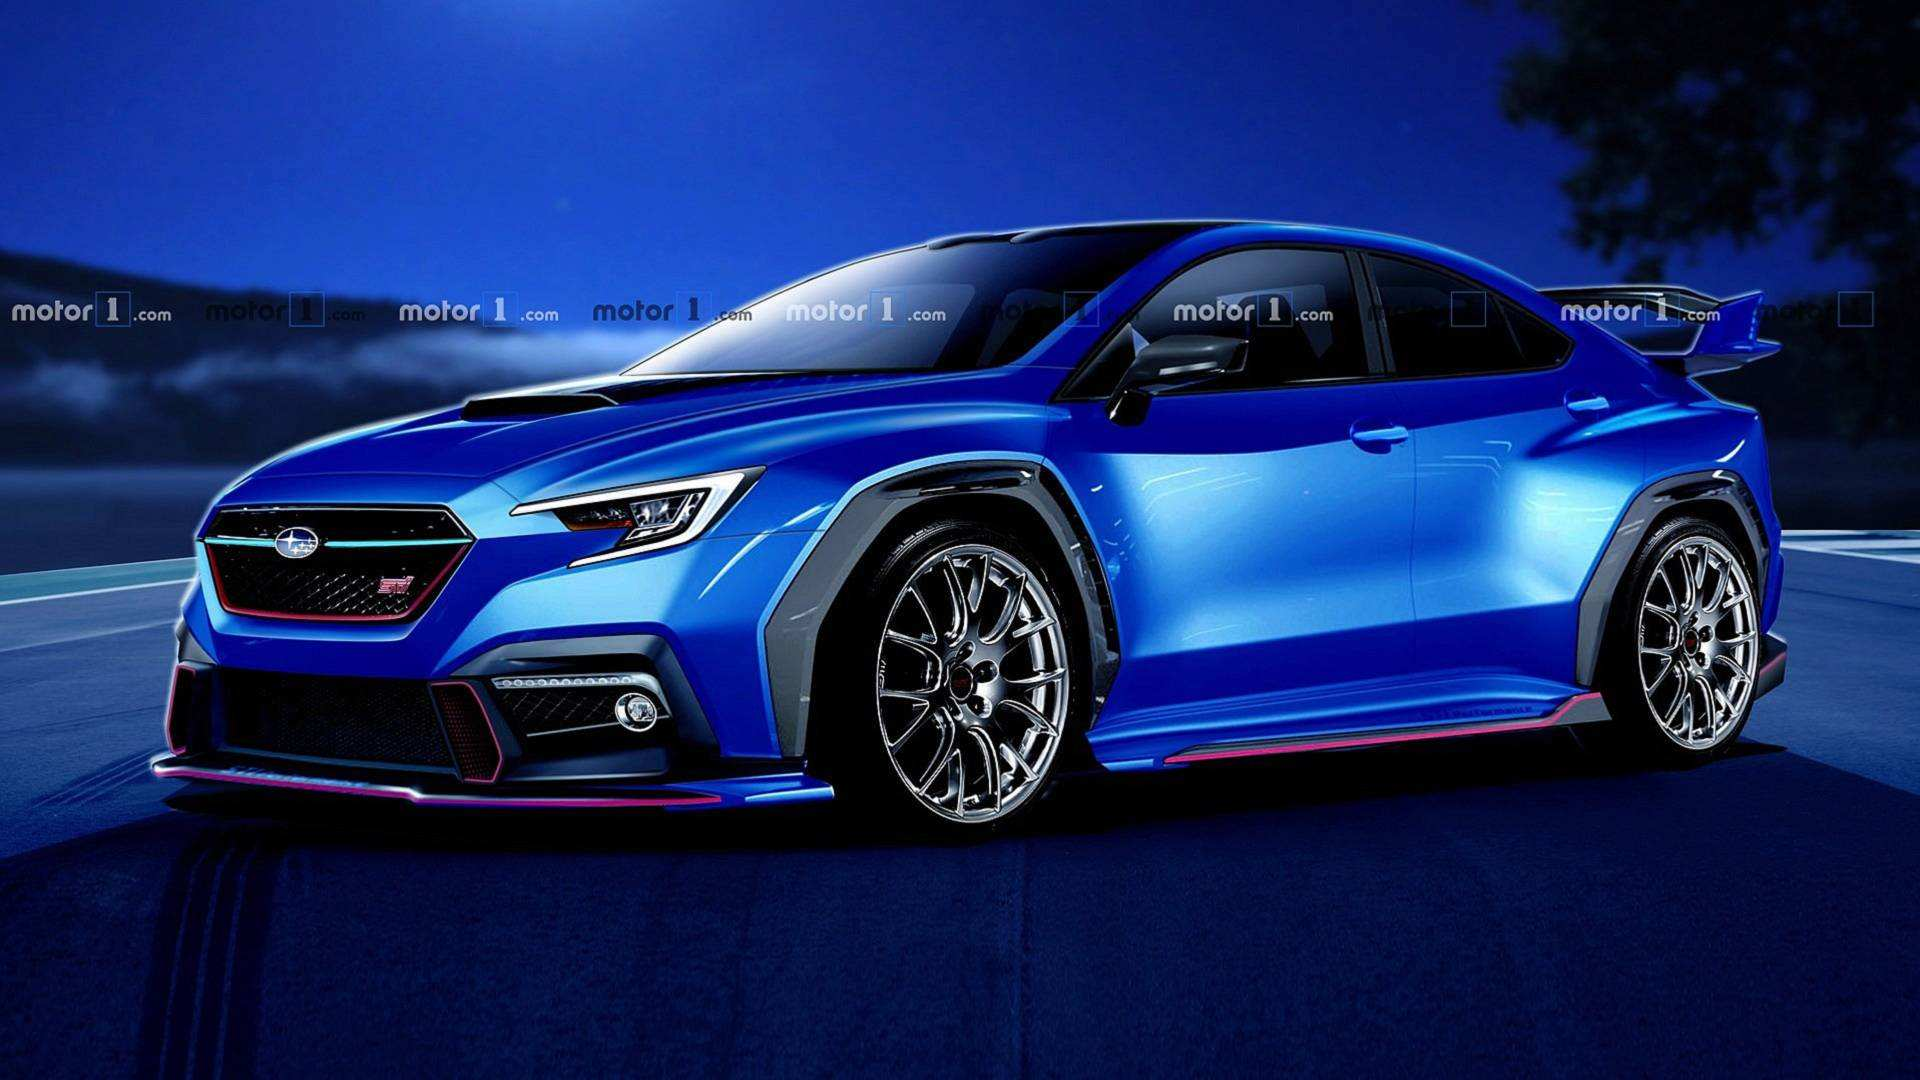 24 All New Subaru Impreza Wrx Sti 2020 Release